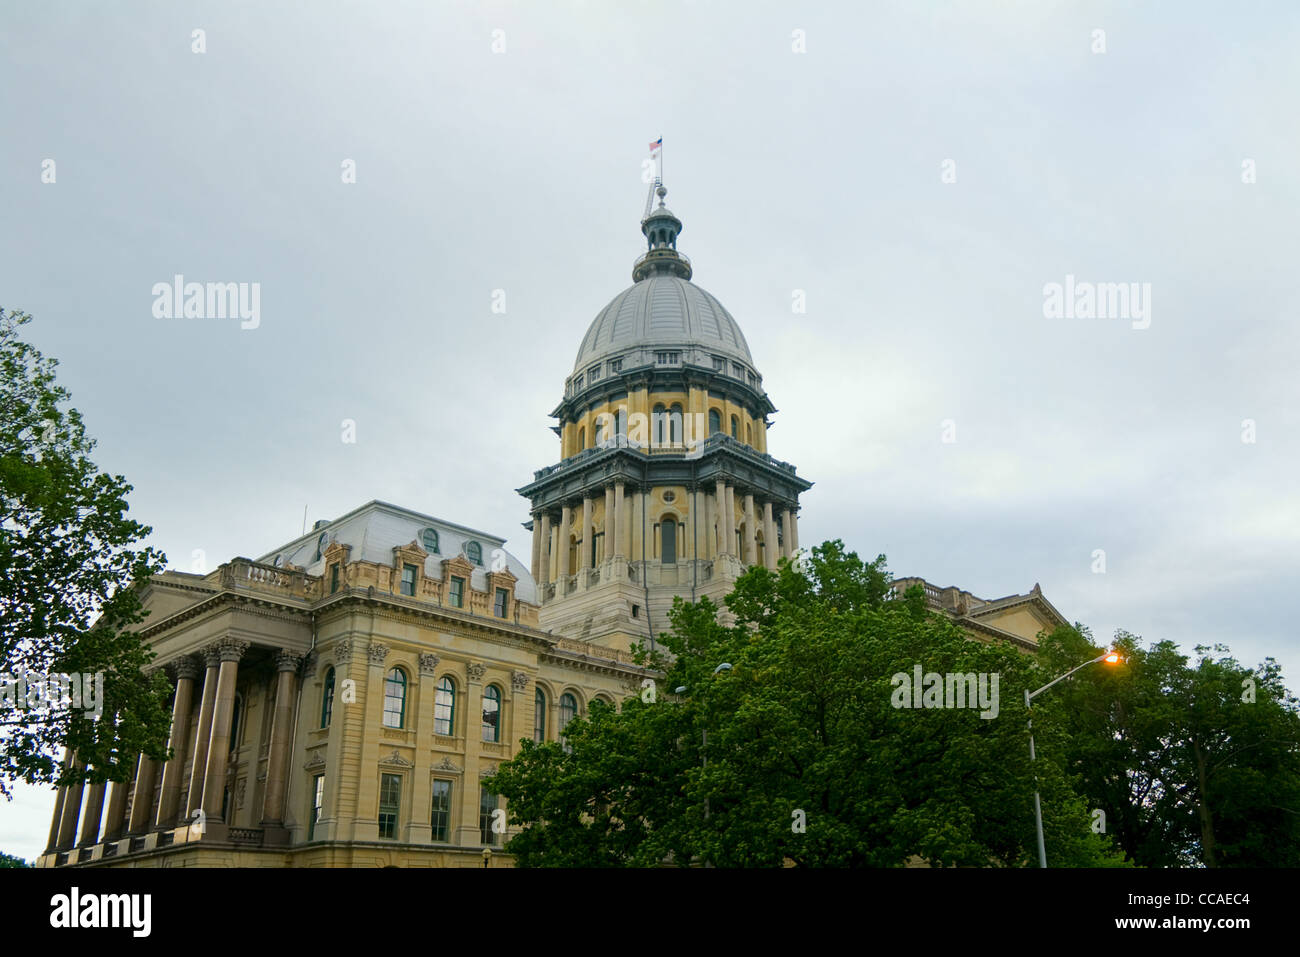 Capitol building of Springfield Illinois showing dome and building - Stock Image